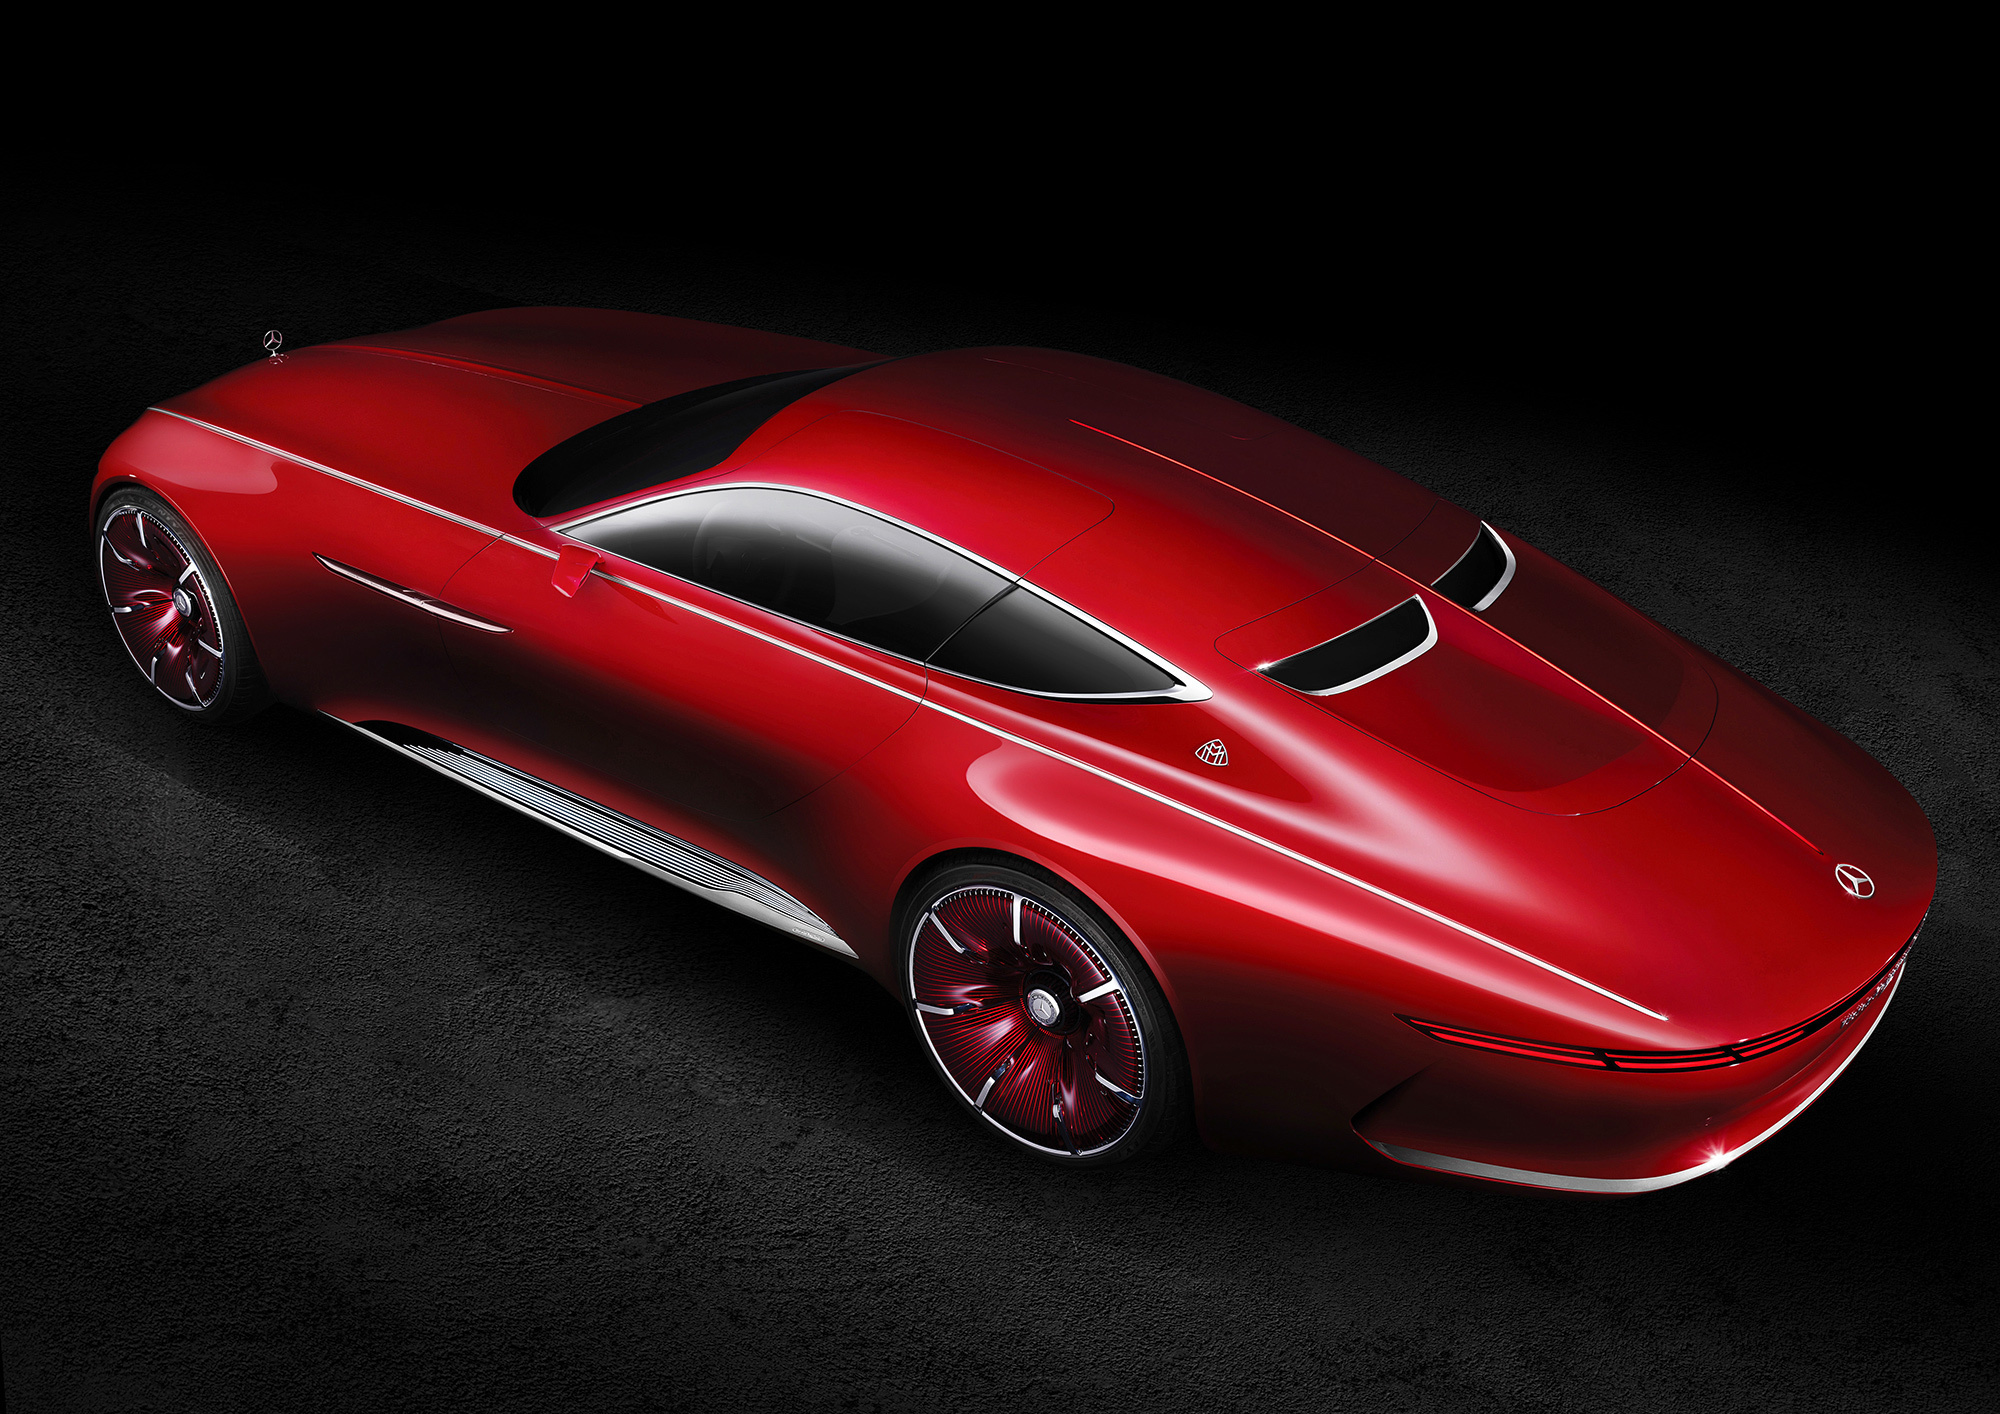 Vision Mercedes Maybach 6 Computer Wallpaper